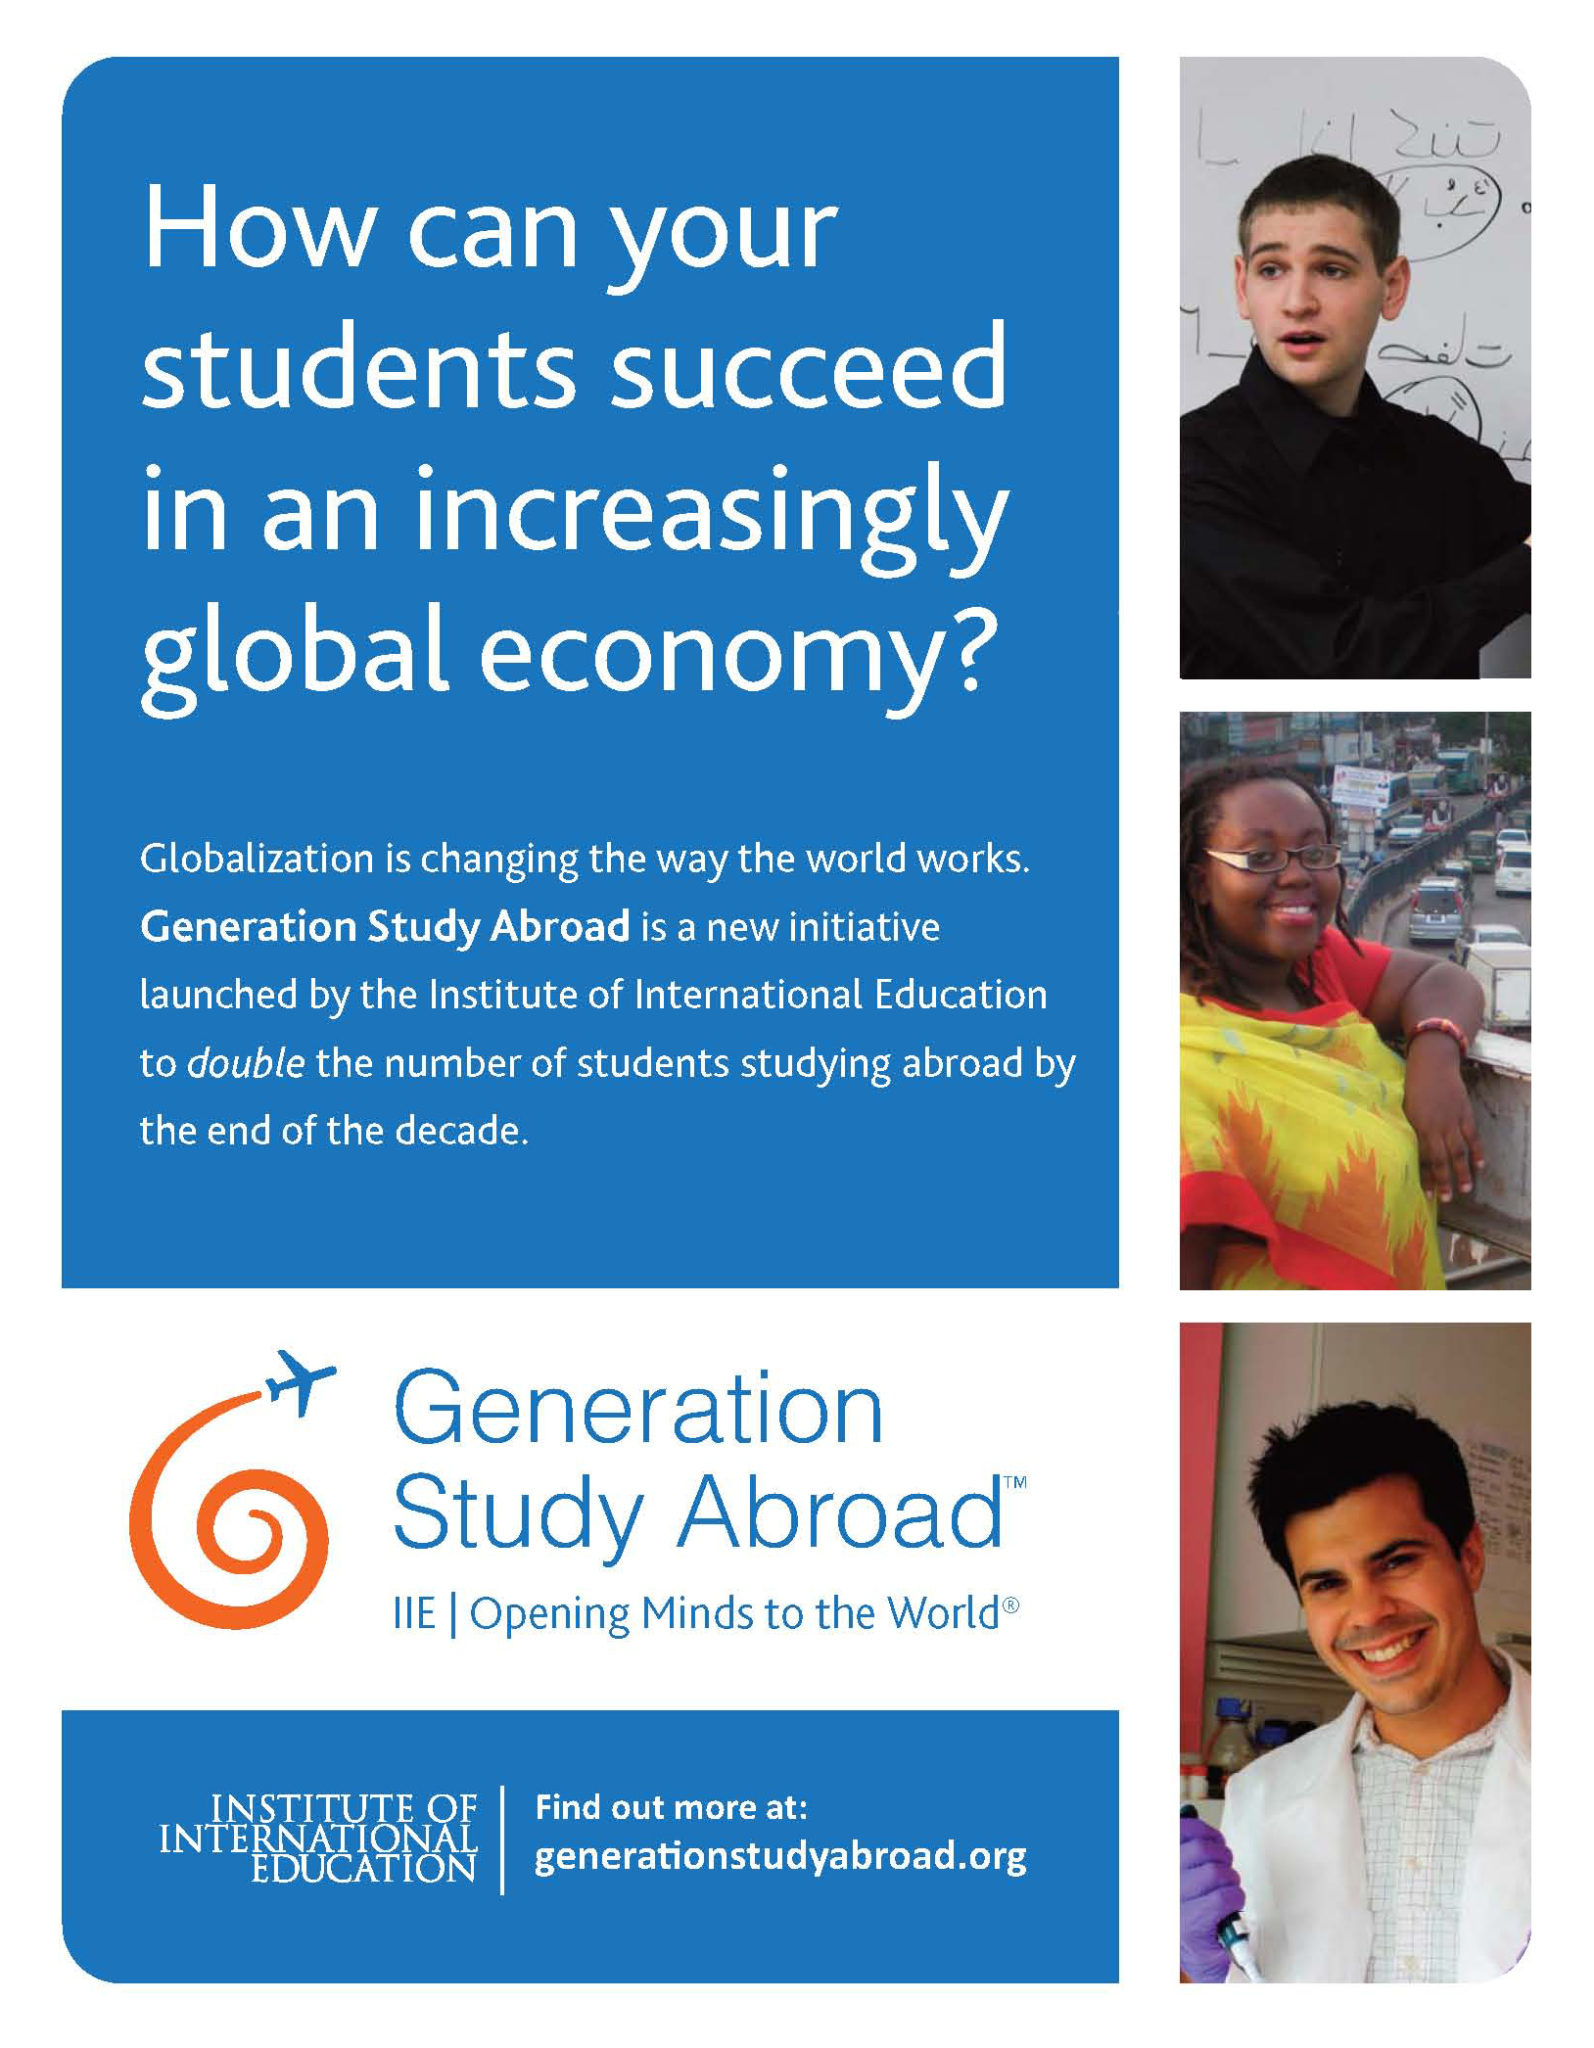 OT-Generation-Study-Abroad-graphic-002-high-res